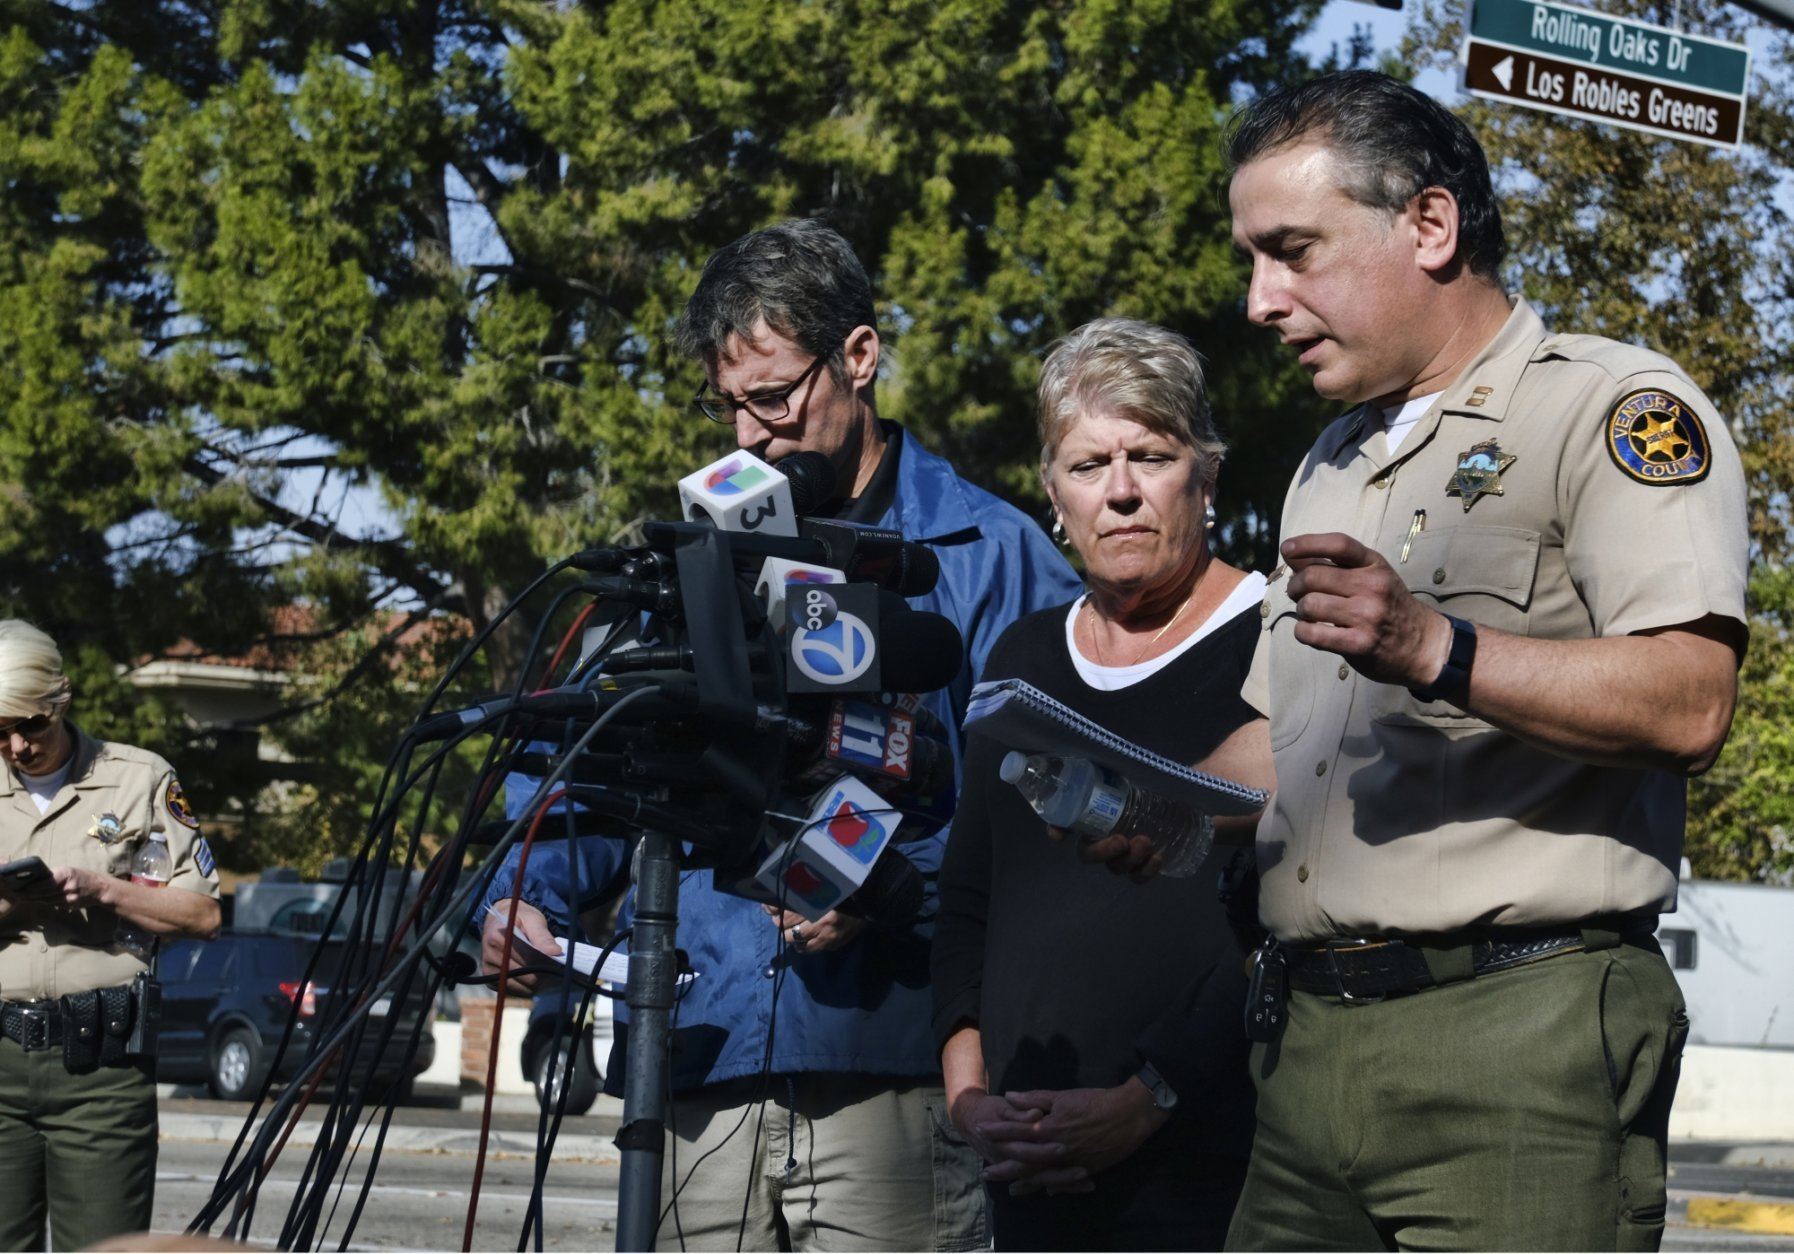 Standing at the microphones, from left to right, Paul Delacourt, assistant director for the FBI Los Angeles, and U.S. Rep. Julia Brownley look on as Ventura County Sheriff's Capt. Garo Kuredjian speaks to the media, Thursday, Nov. 8, 2018, in Thousand Oaks, Calif. Multiple people were fatally shot late Wednesday by the gunman who opened fire at the Borderline Bar and Grill, which was holding a weekly country music dance night for college students. (AP Photo/Richard Vogel)